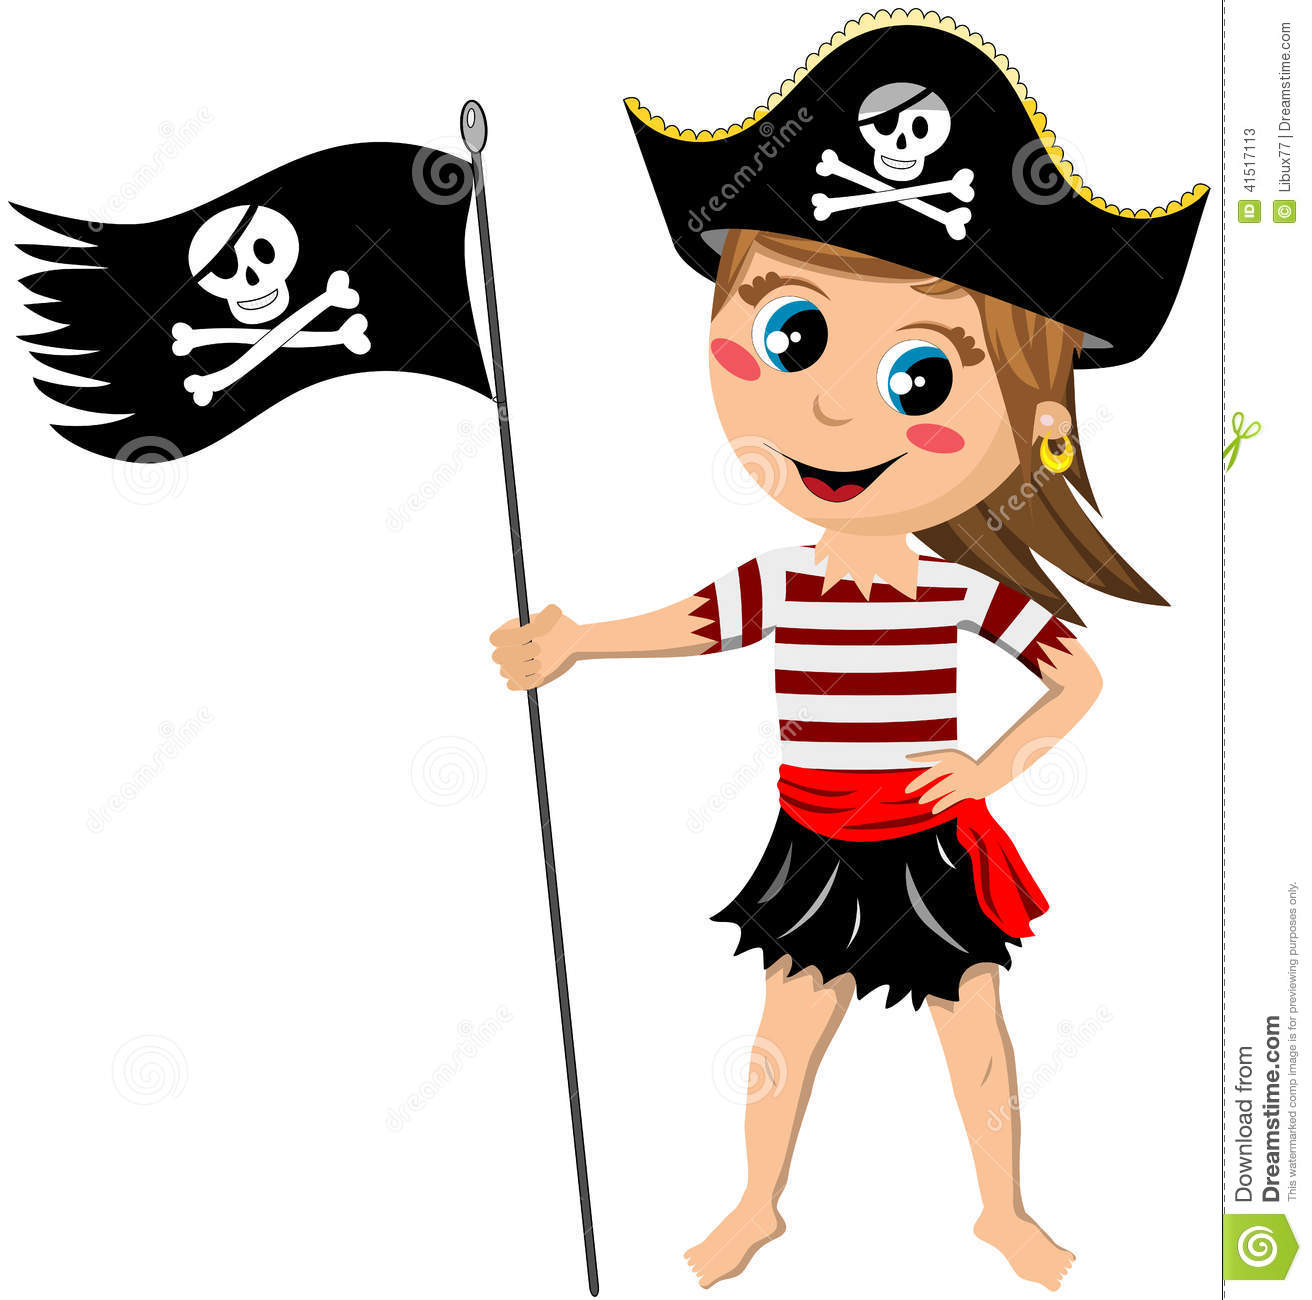 Pirate Girl Jolly Roger Flag Isolated Stock Vector - Image: 41517113